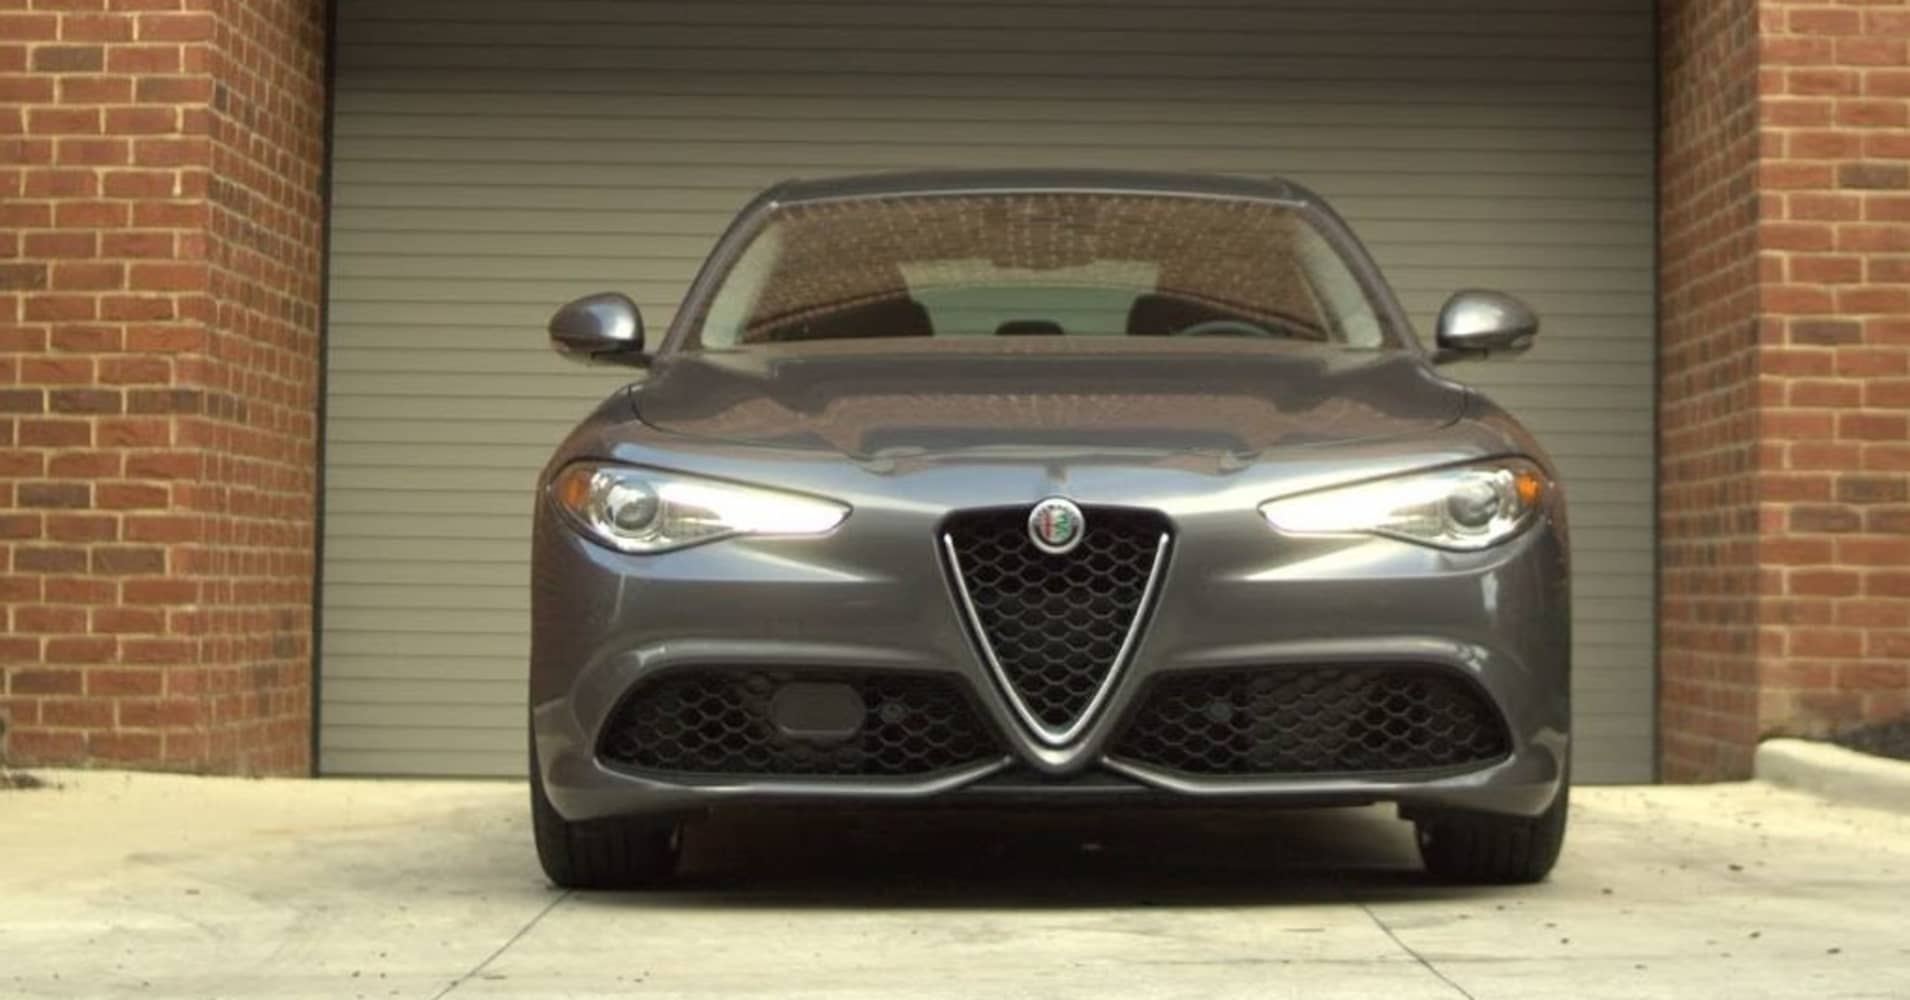 The 2018 Alfa Romeo Giulia Ti drives beautifully, but some people are concerned about the quality